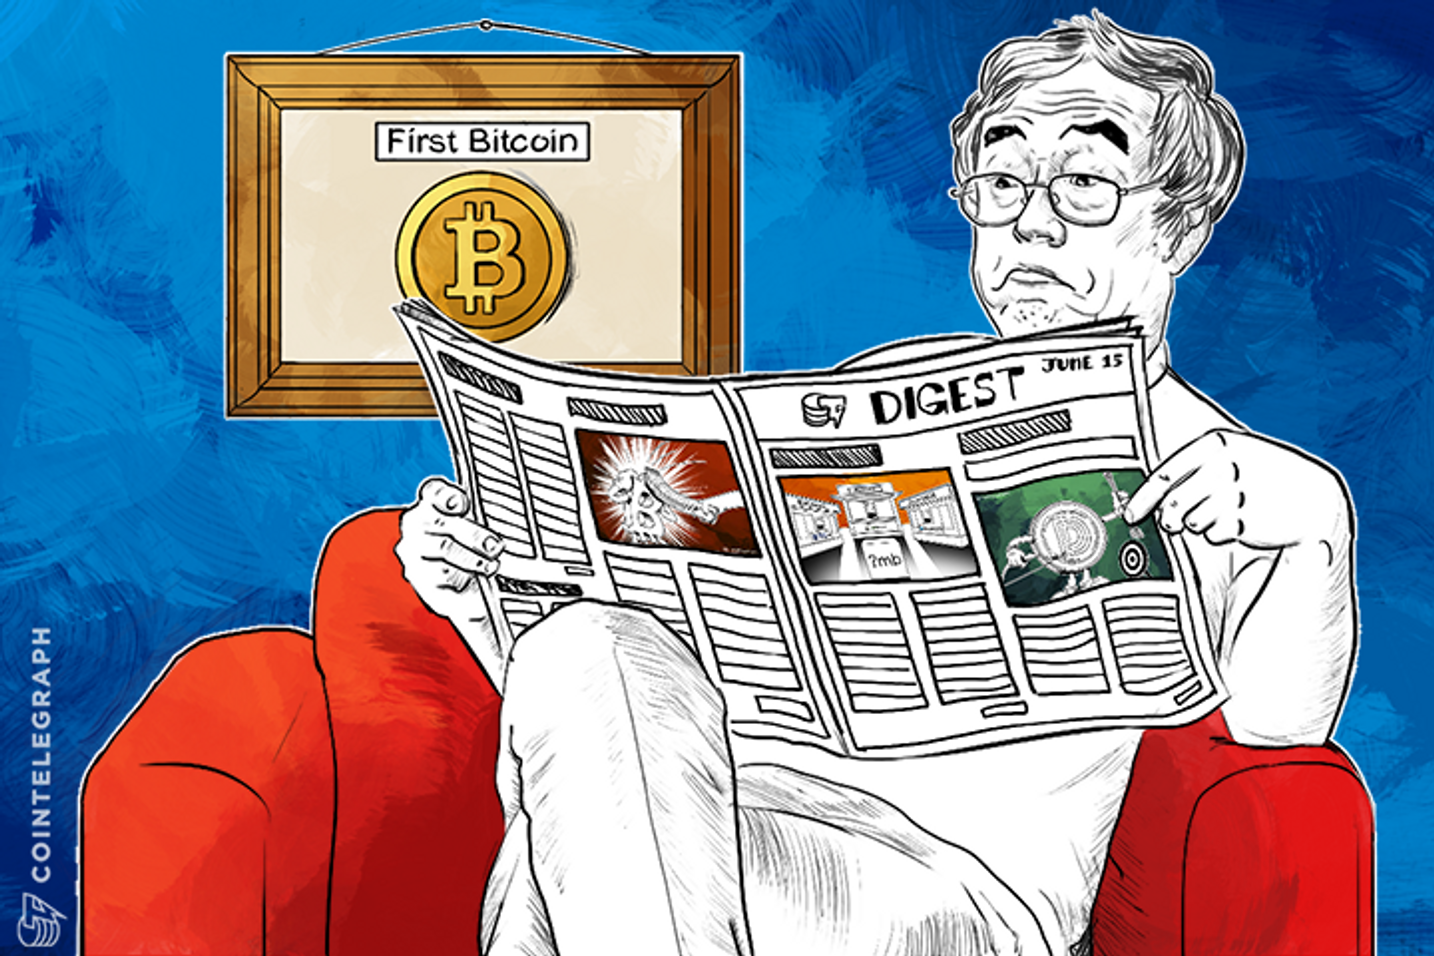 JUN 15 DIGEST: Overstock Spends Bitcoin on 3 Domains; Anonymous Hacker 'Doxes' Silk Road Judge